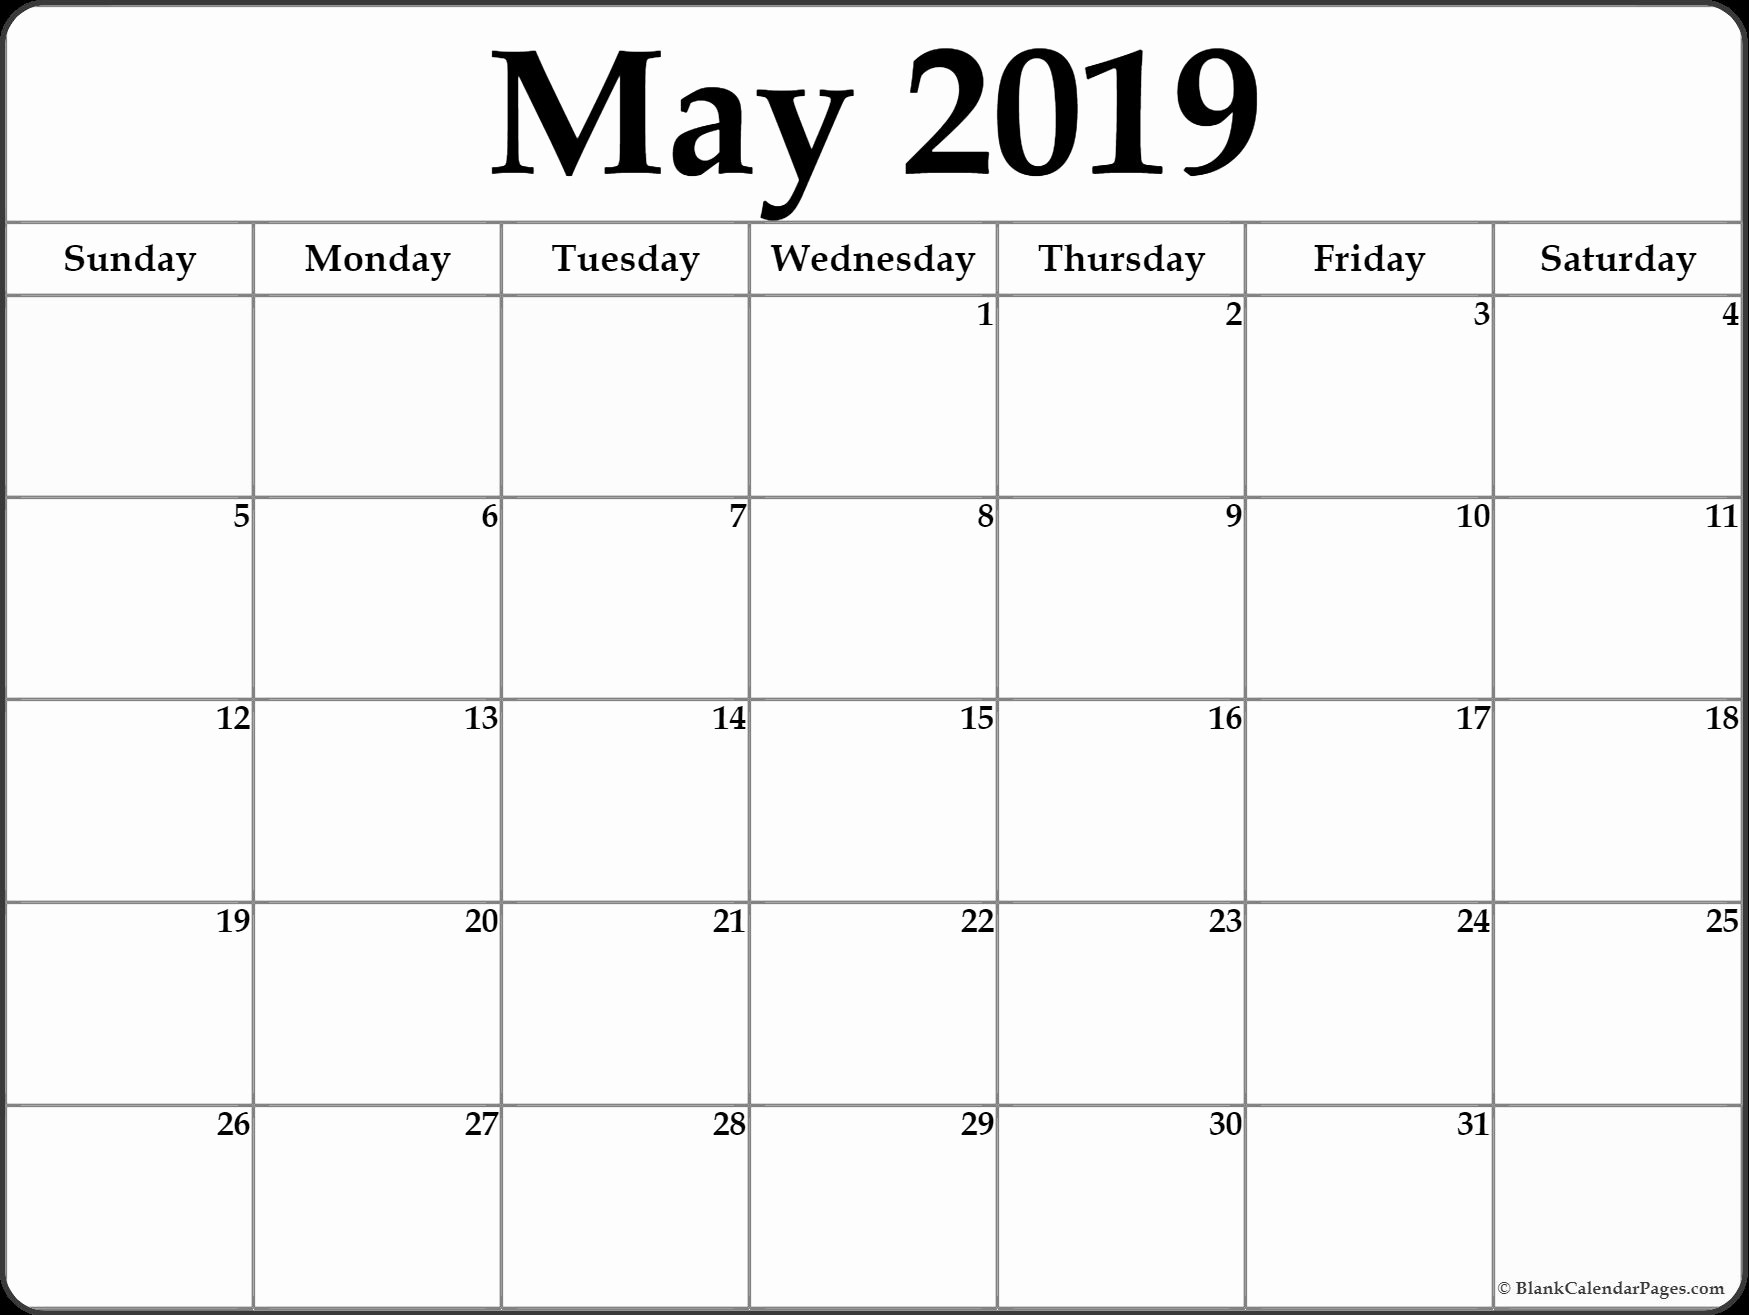 Black and White Calendar Template Elegant May 2019 Calendar Printable Template Site Provides